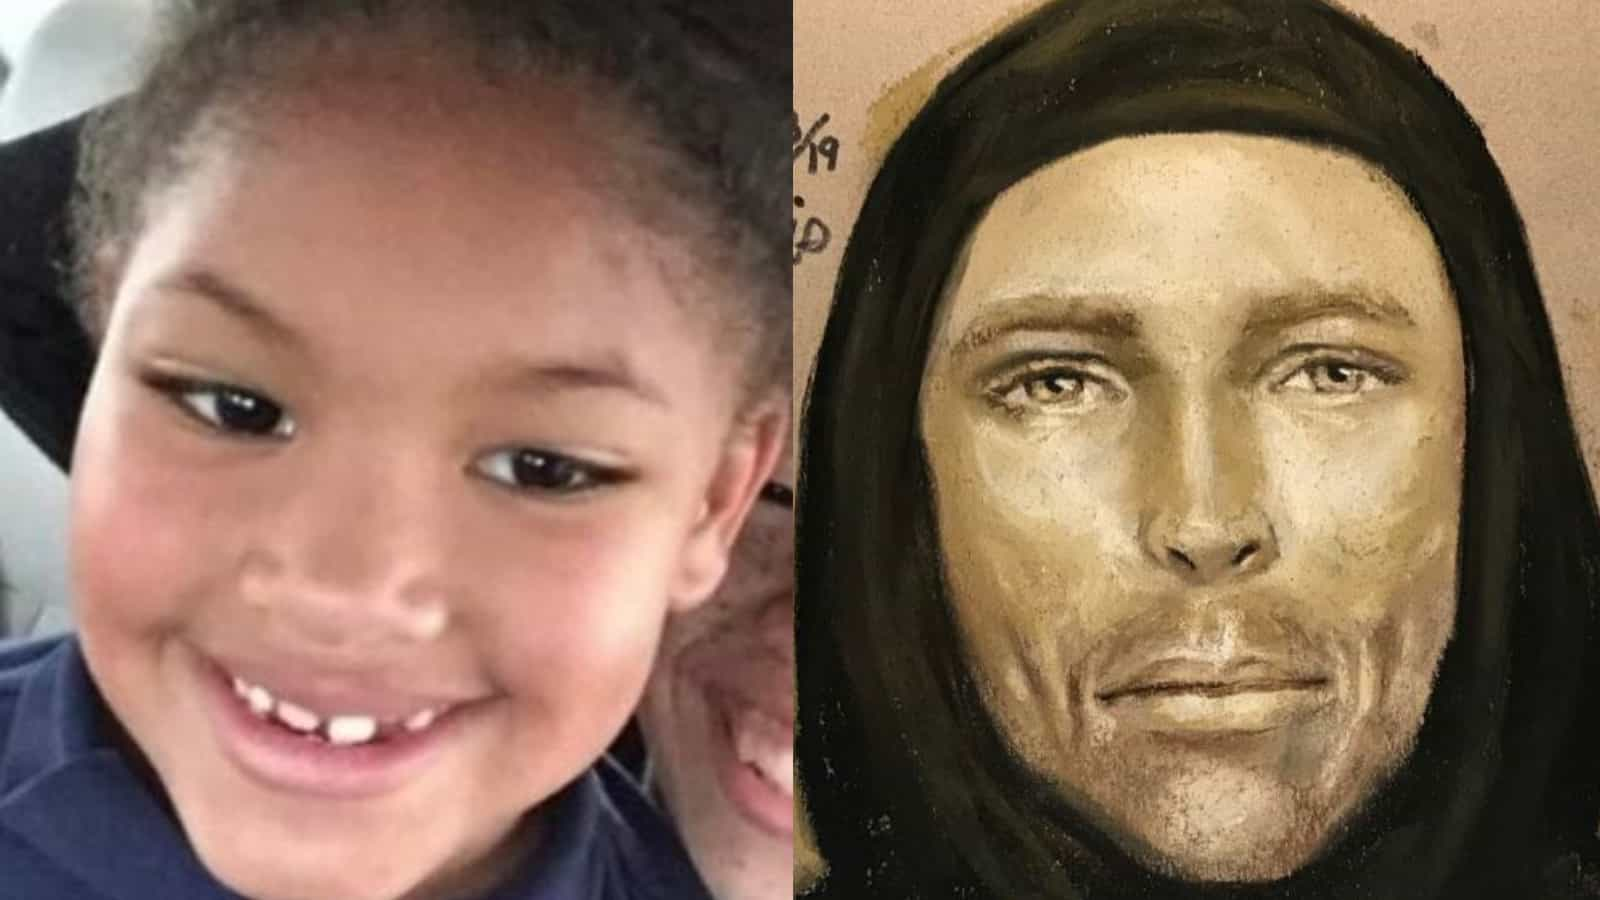 Texas Police Release Sketch of Suspect in Jazmine Barnes Shooting